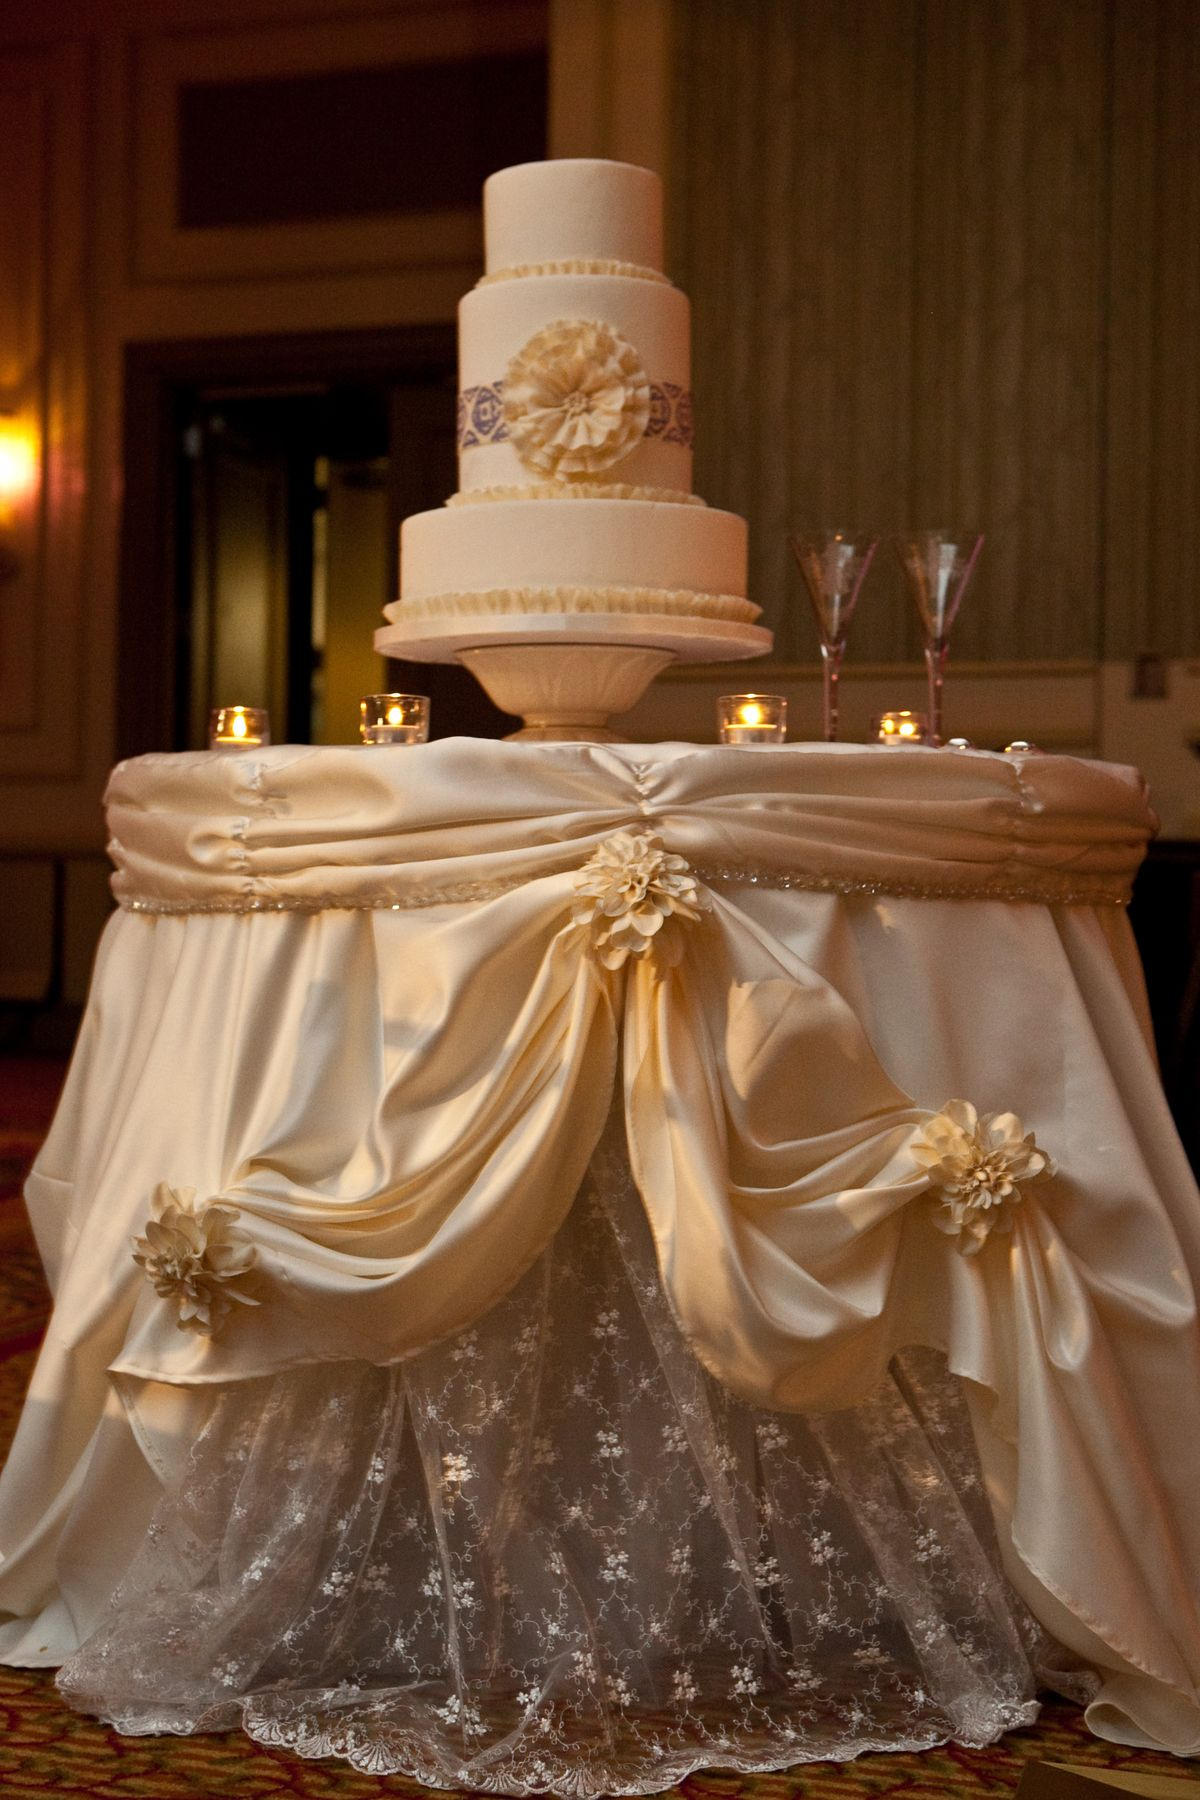 The Gorgeous Cake Table Linen Was Made To Resemble The Bride S